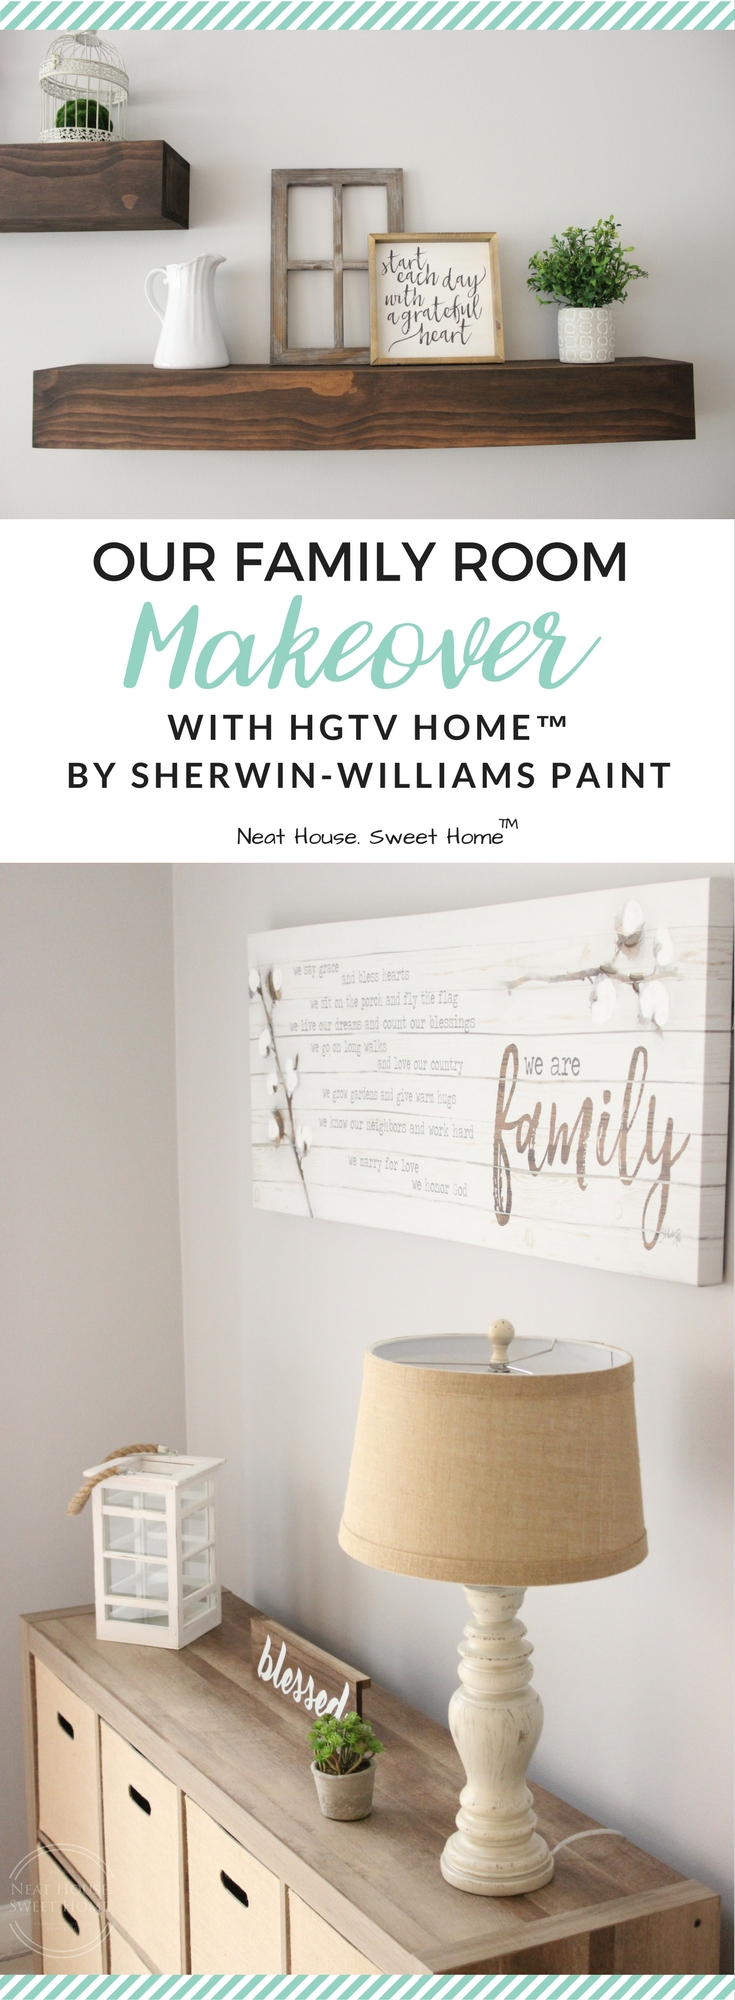 This family room makeover was a breeze to pull off. I used HGTV HOME™ by Sherwin-Williams INFINITY Interior Paint and Primer in Grayish (HGSW2447). @HGTVHOMEbySW #HGTVHOMEbySW #Sponsored